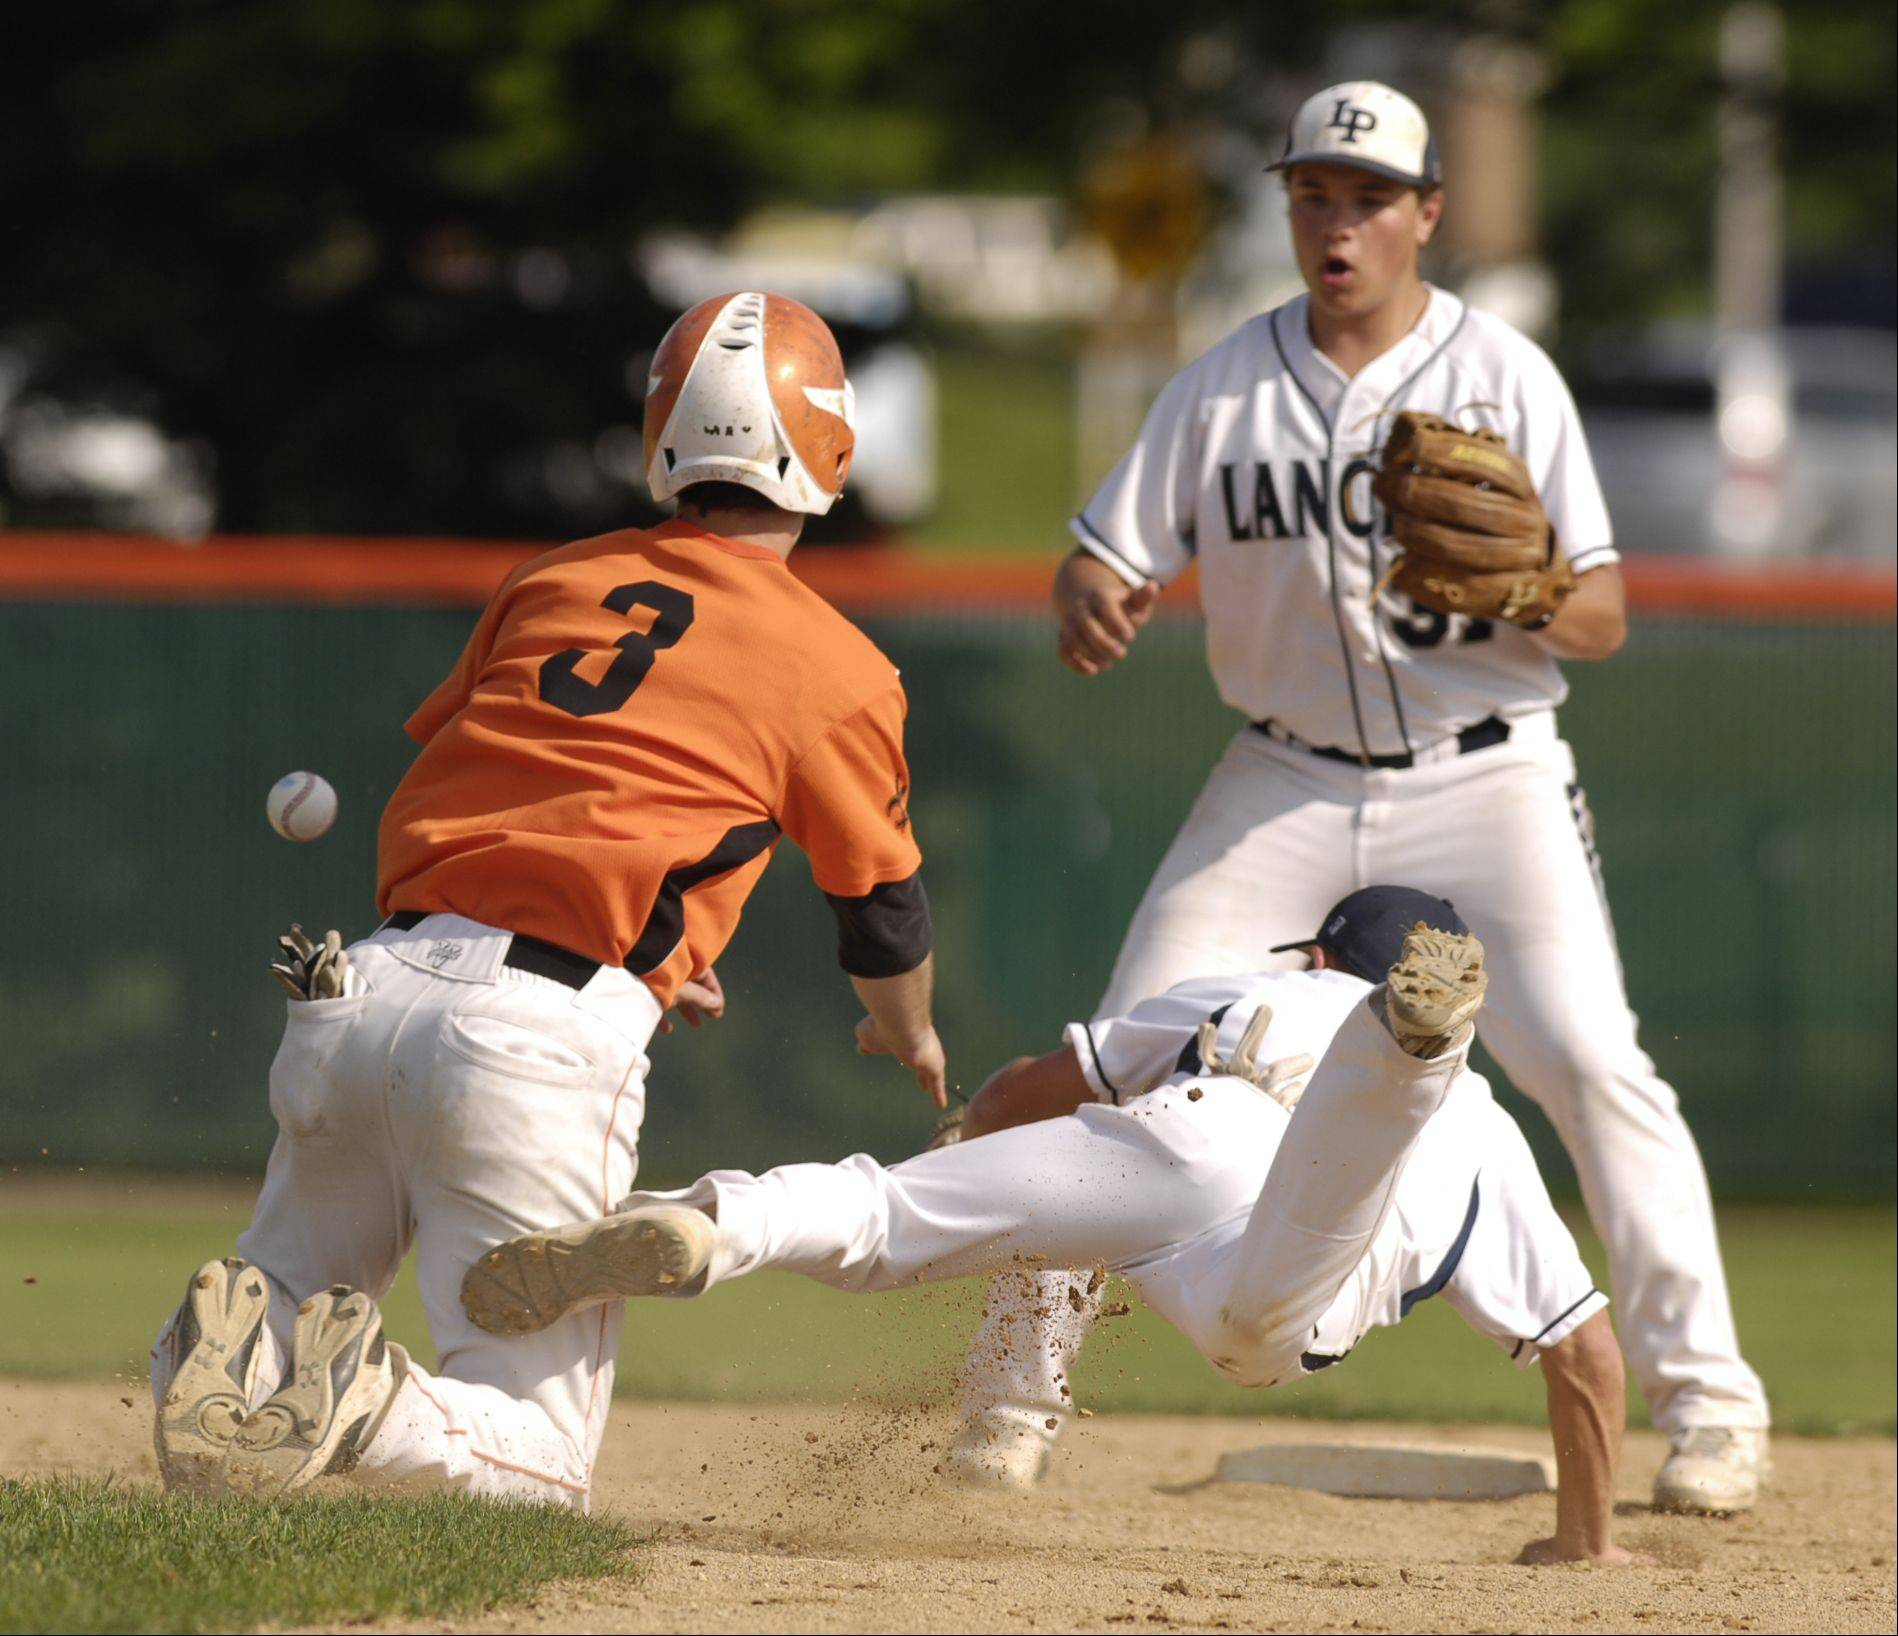 Jack Dellostritto of St. Charles East collides Sam Pellegrino of Lake Park as he heads to second during the sectional semifinals, Monday in St. Charles.